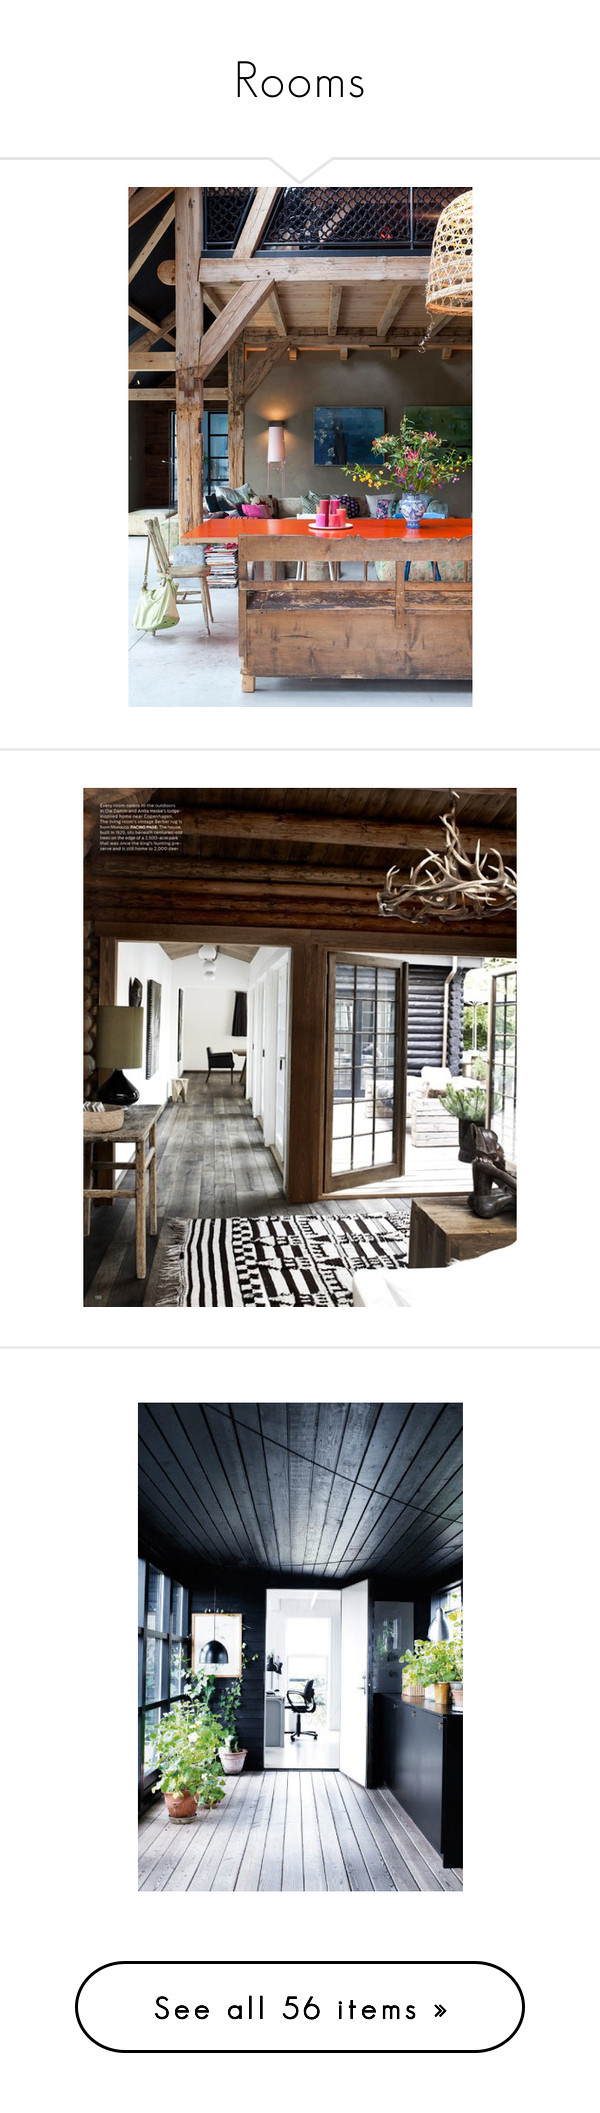 """""""Rooms"""" by inheritancecyclefan99 ❤ liked on Polyvore featuring backgrounds, interior, room, bedrooms, houses, house, home, home decor, rooms and ceilings"""